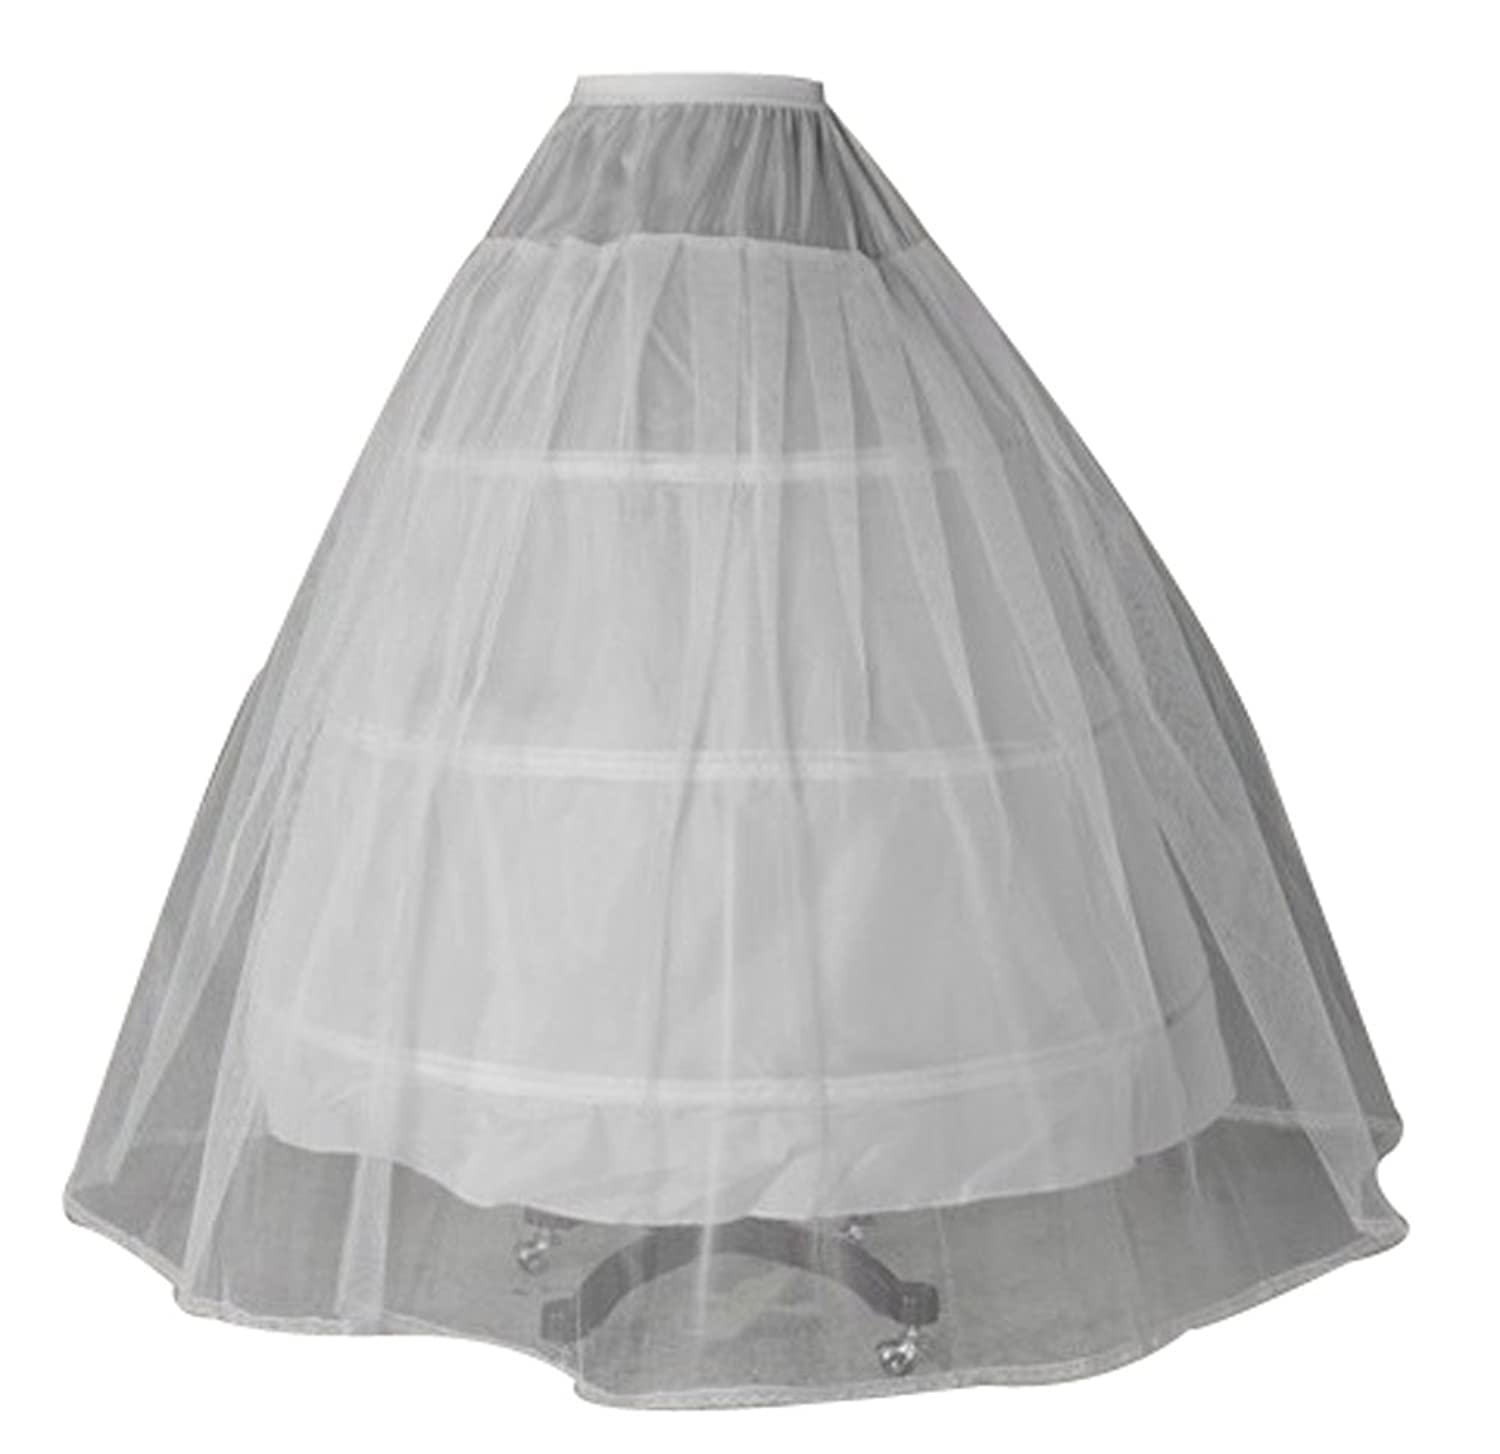 Wedding House Ballkleid Unterrock Reifrock MS130017 bestellen